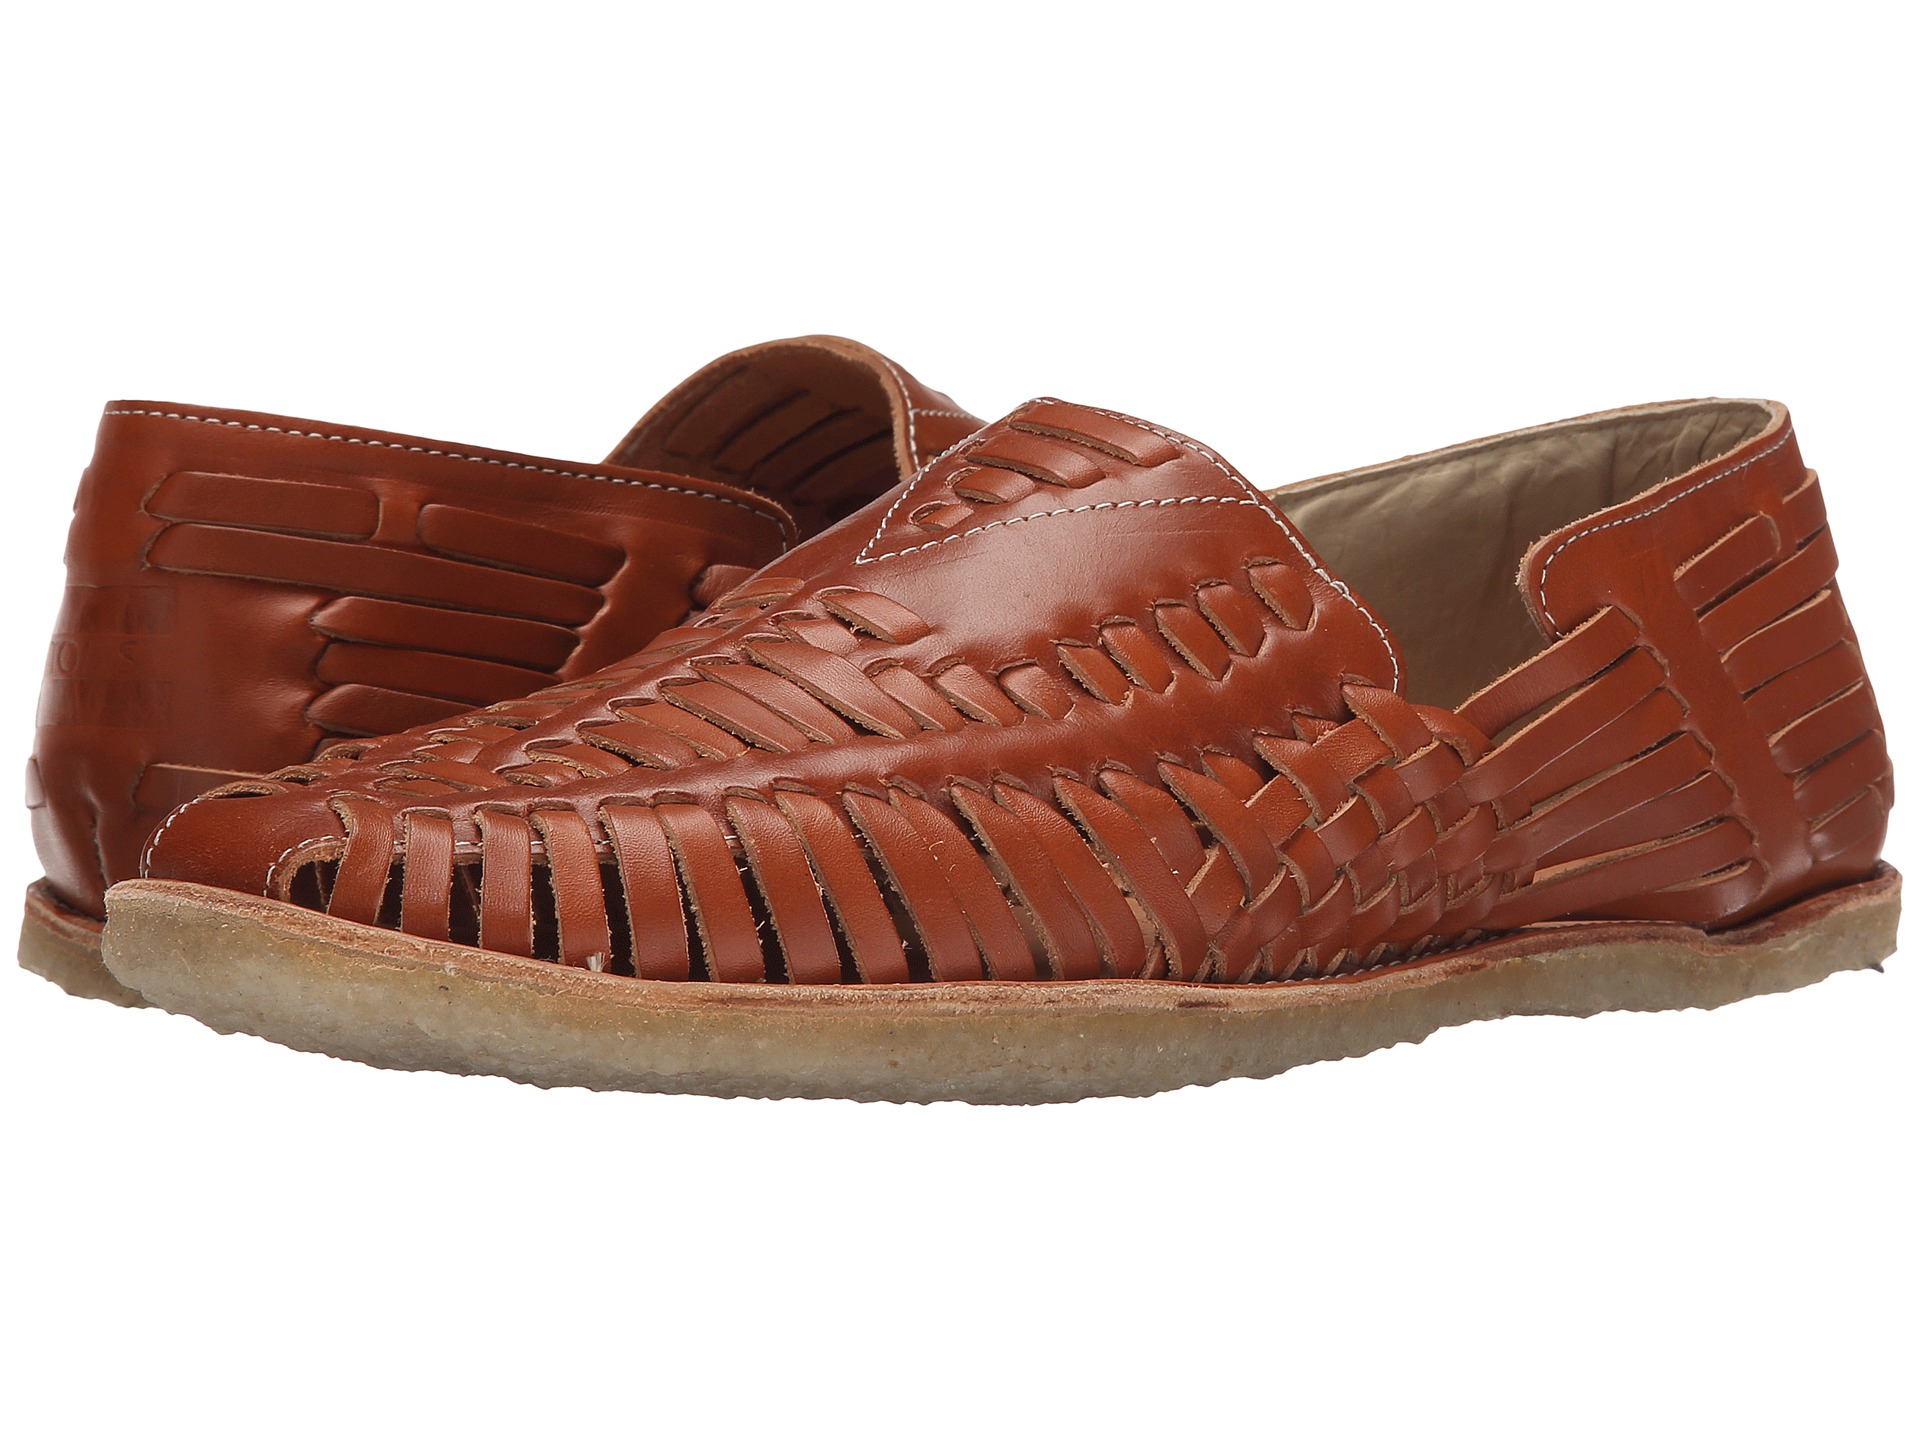 3373cec6a1b3 ... Lyst - Toms Huarache Slip-on in Brown for Men ...